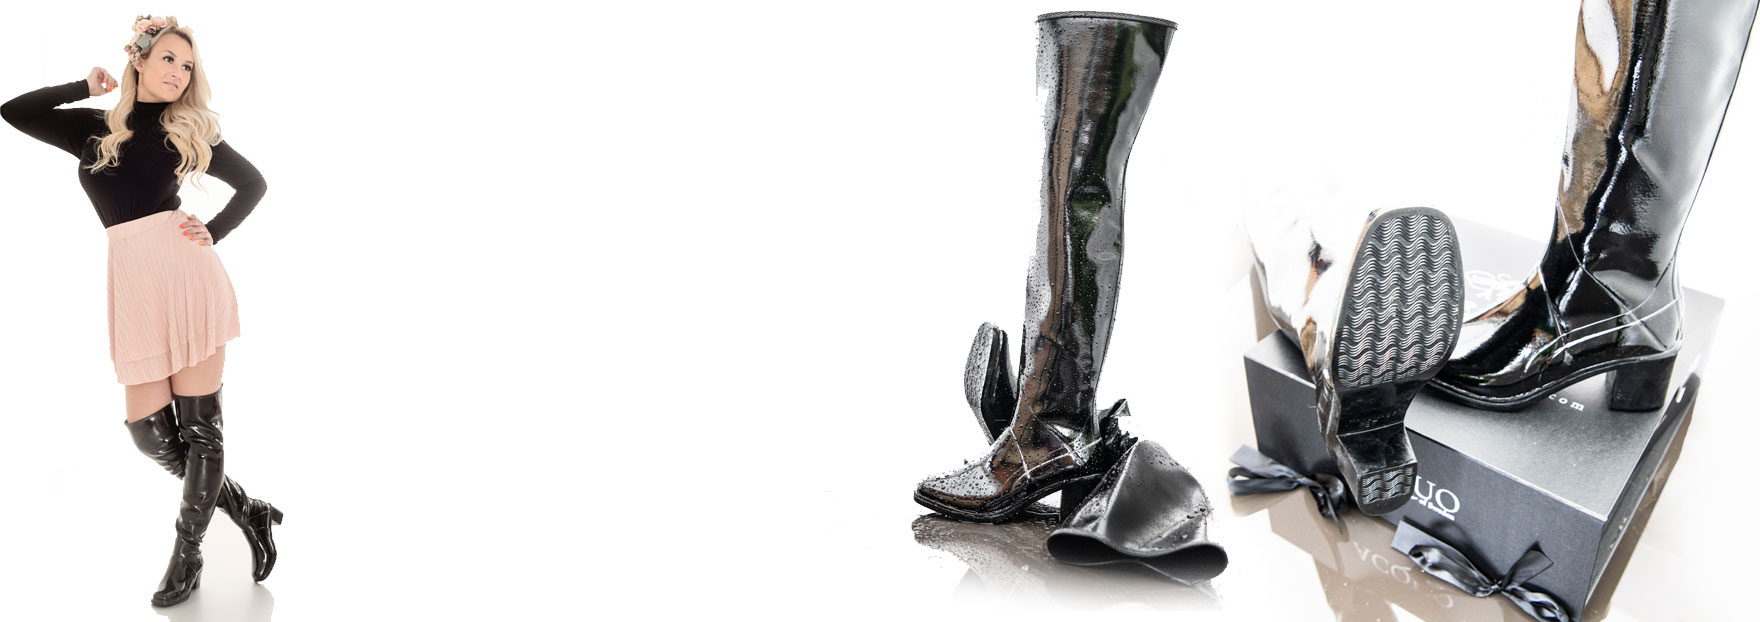 ACQUO Exclusive Thigh high natural Rubber boots